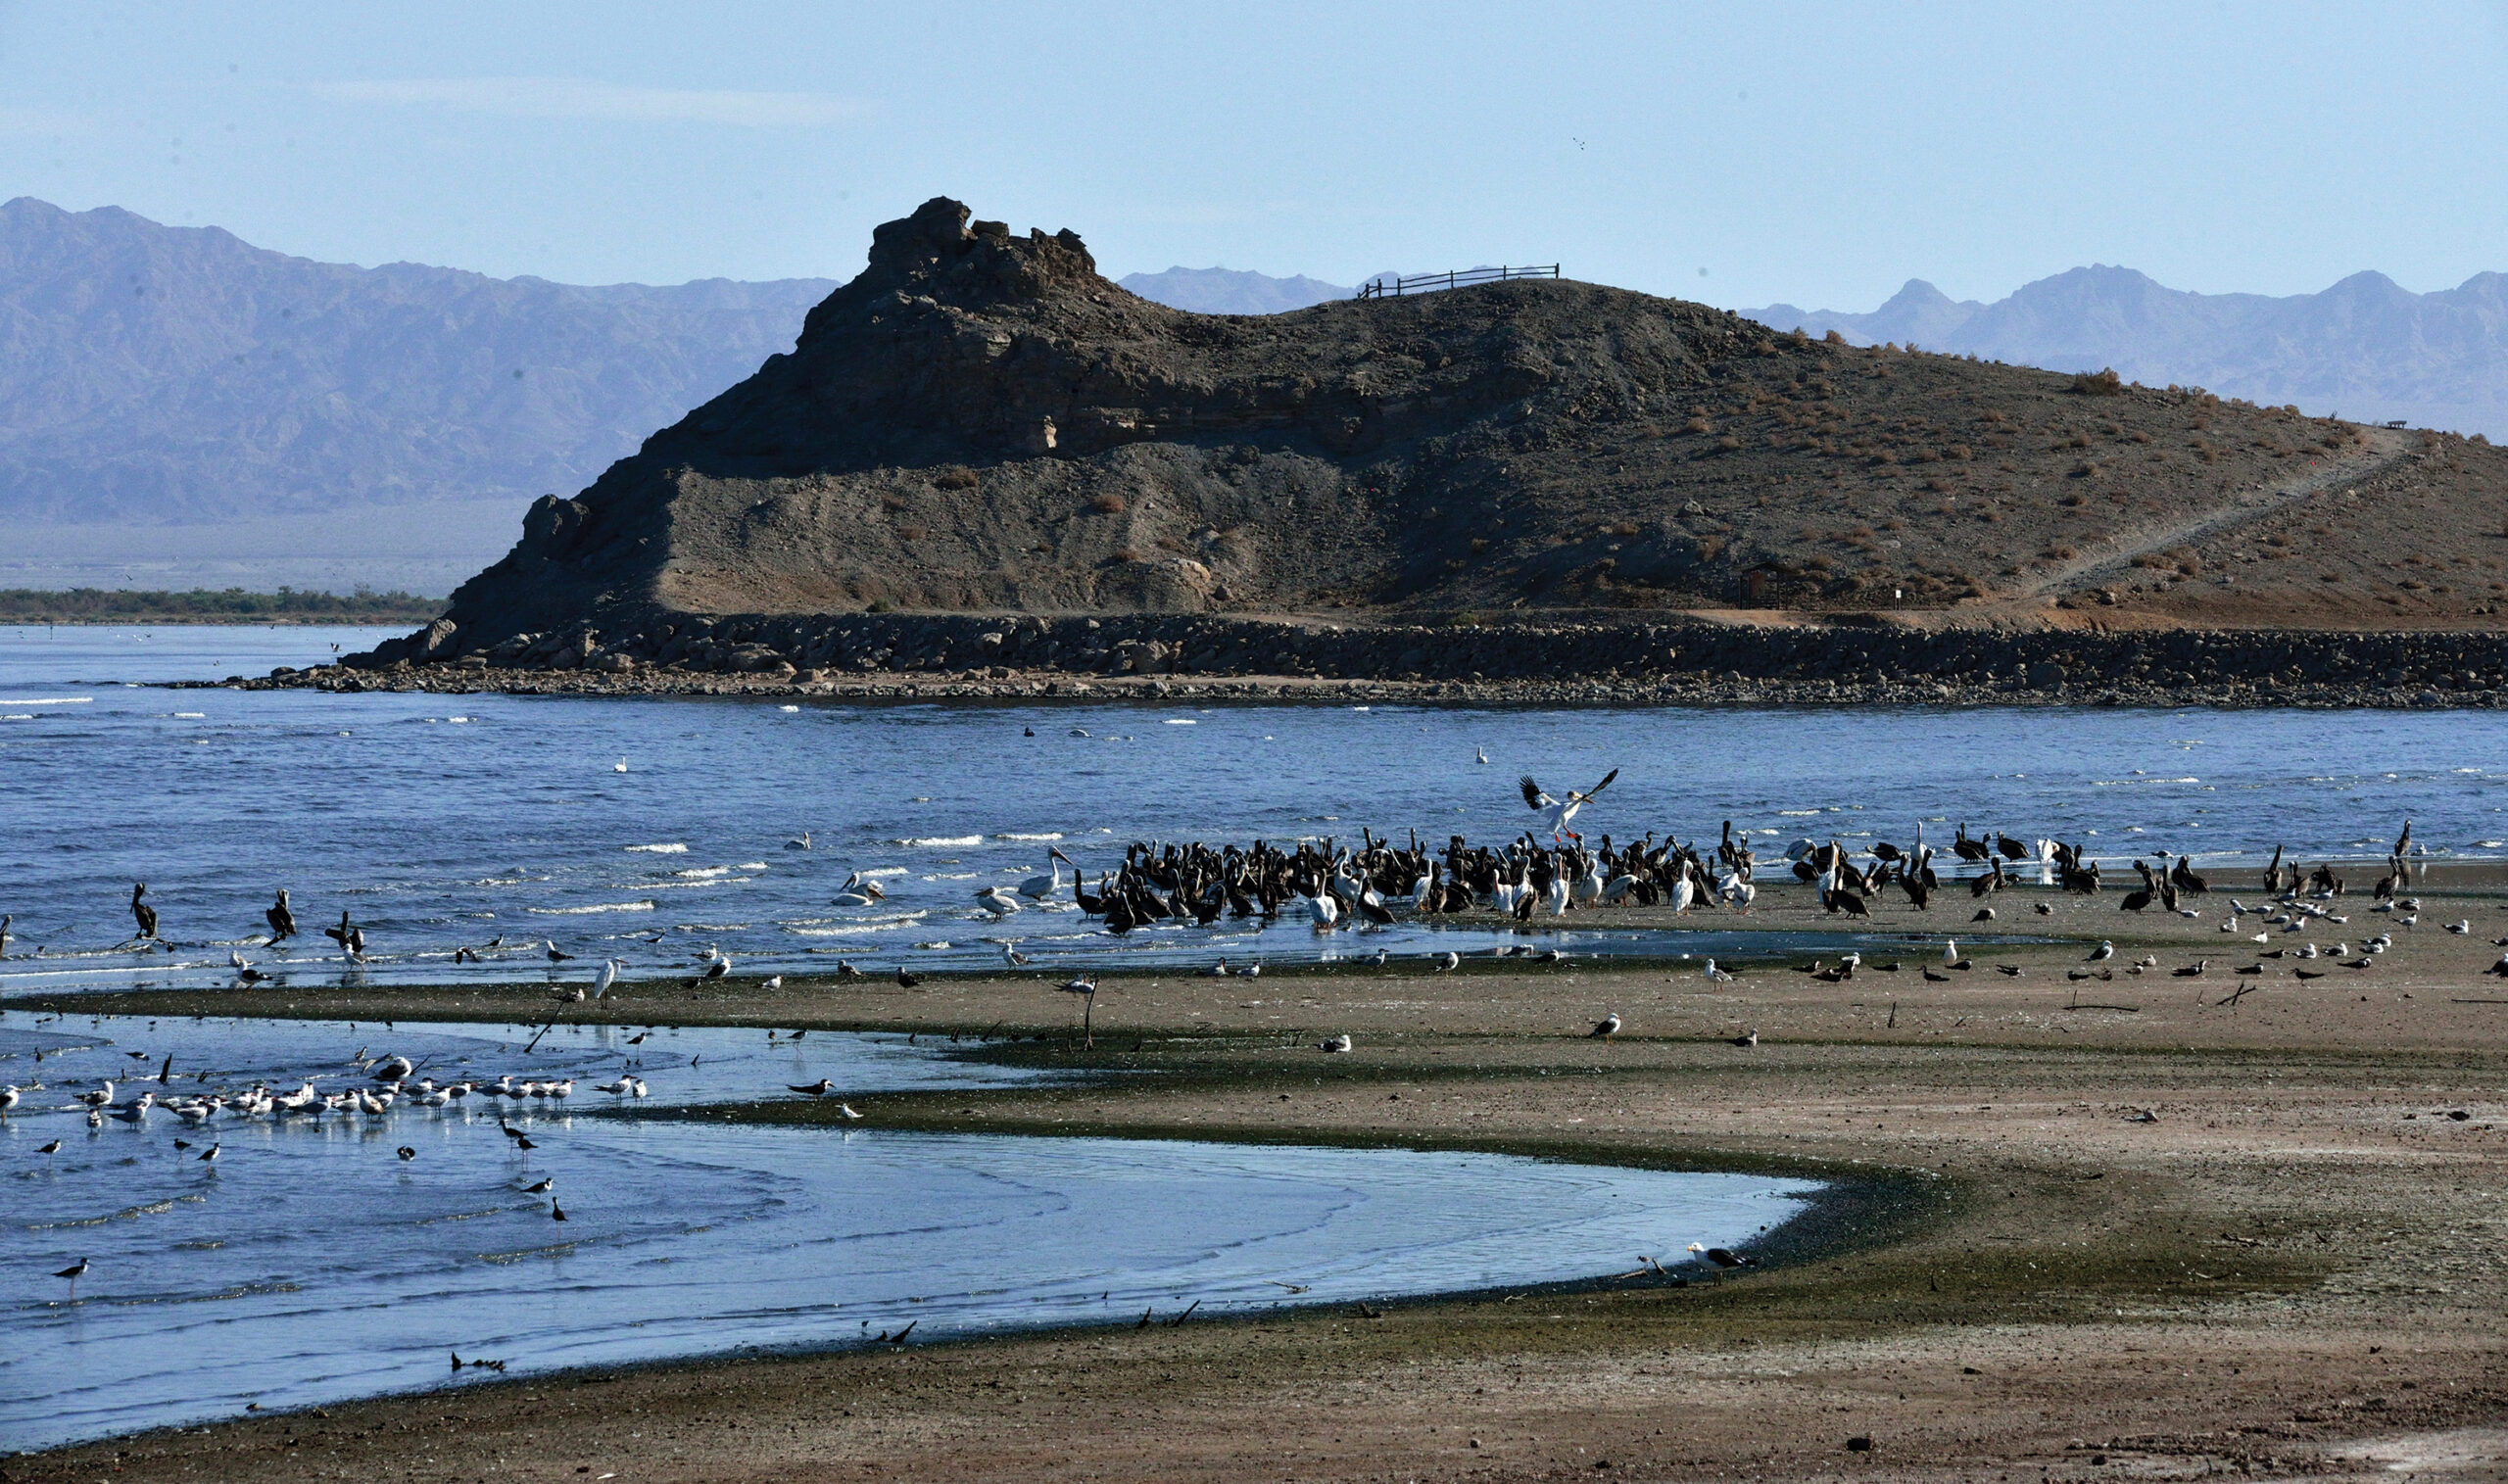 The view is from the Refuge's shoreline on the Salton Sea near Rock Hill, illustrating abundant foraging opportunity for many bird species. Photo by U.S. Fish and Wildlife Service